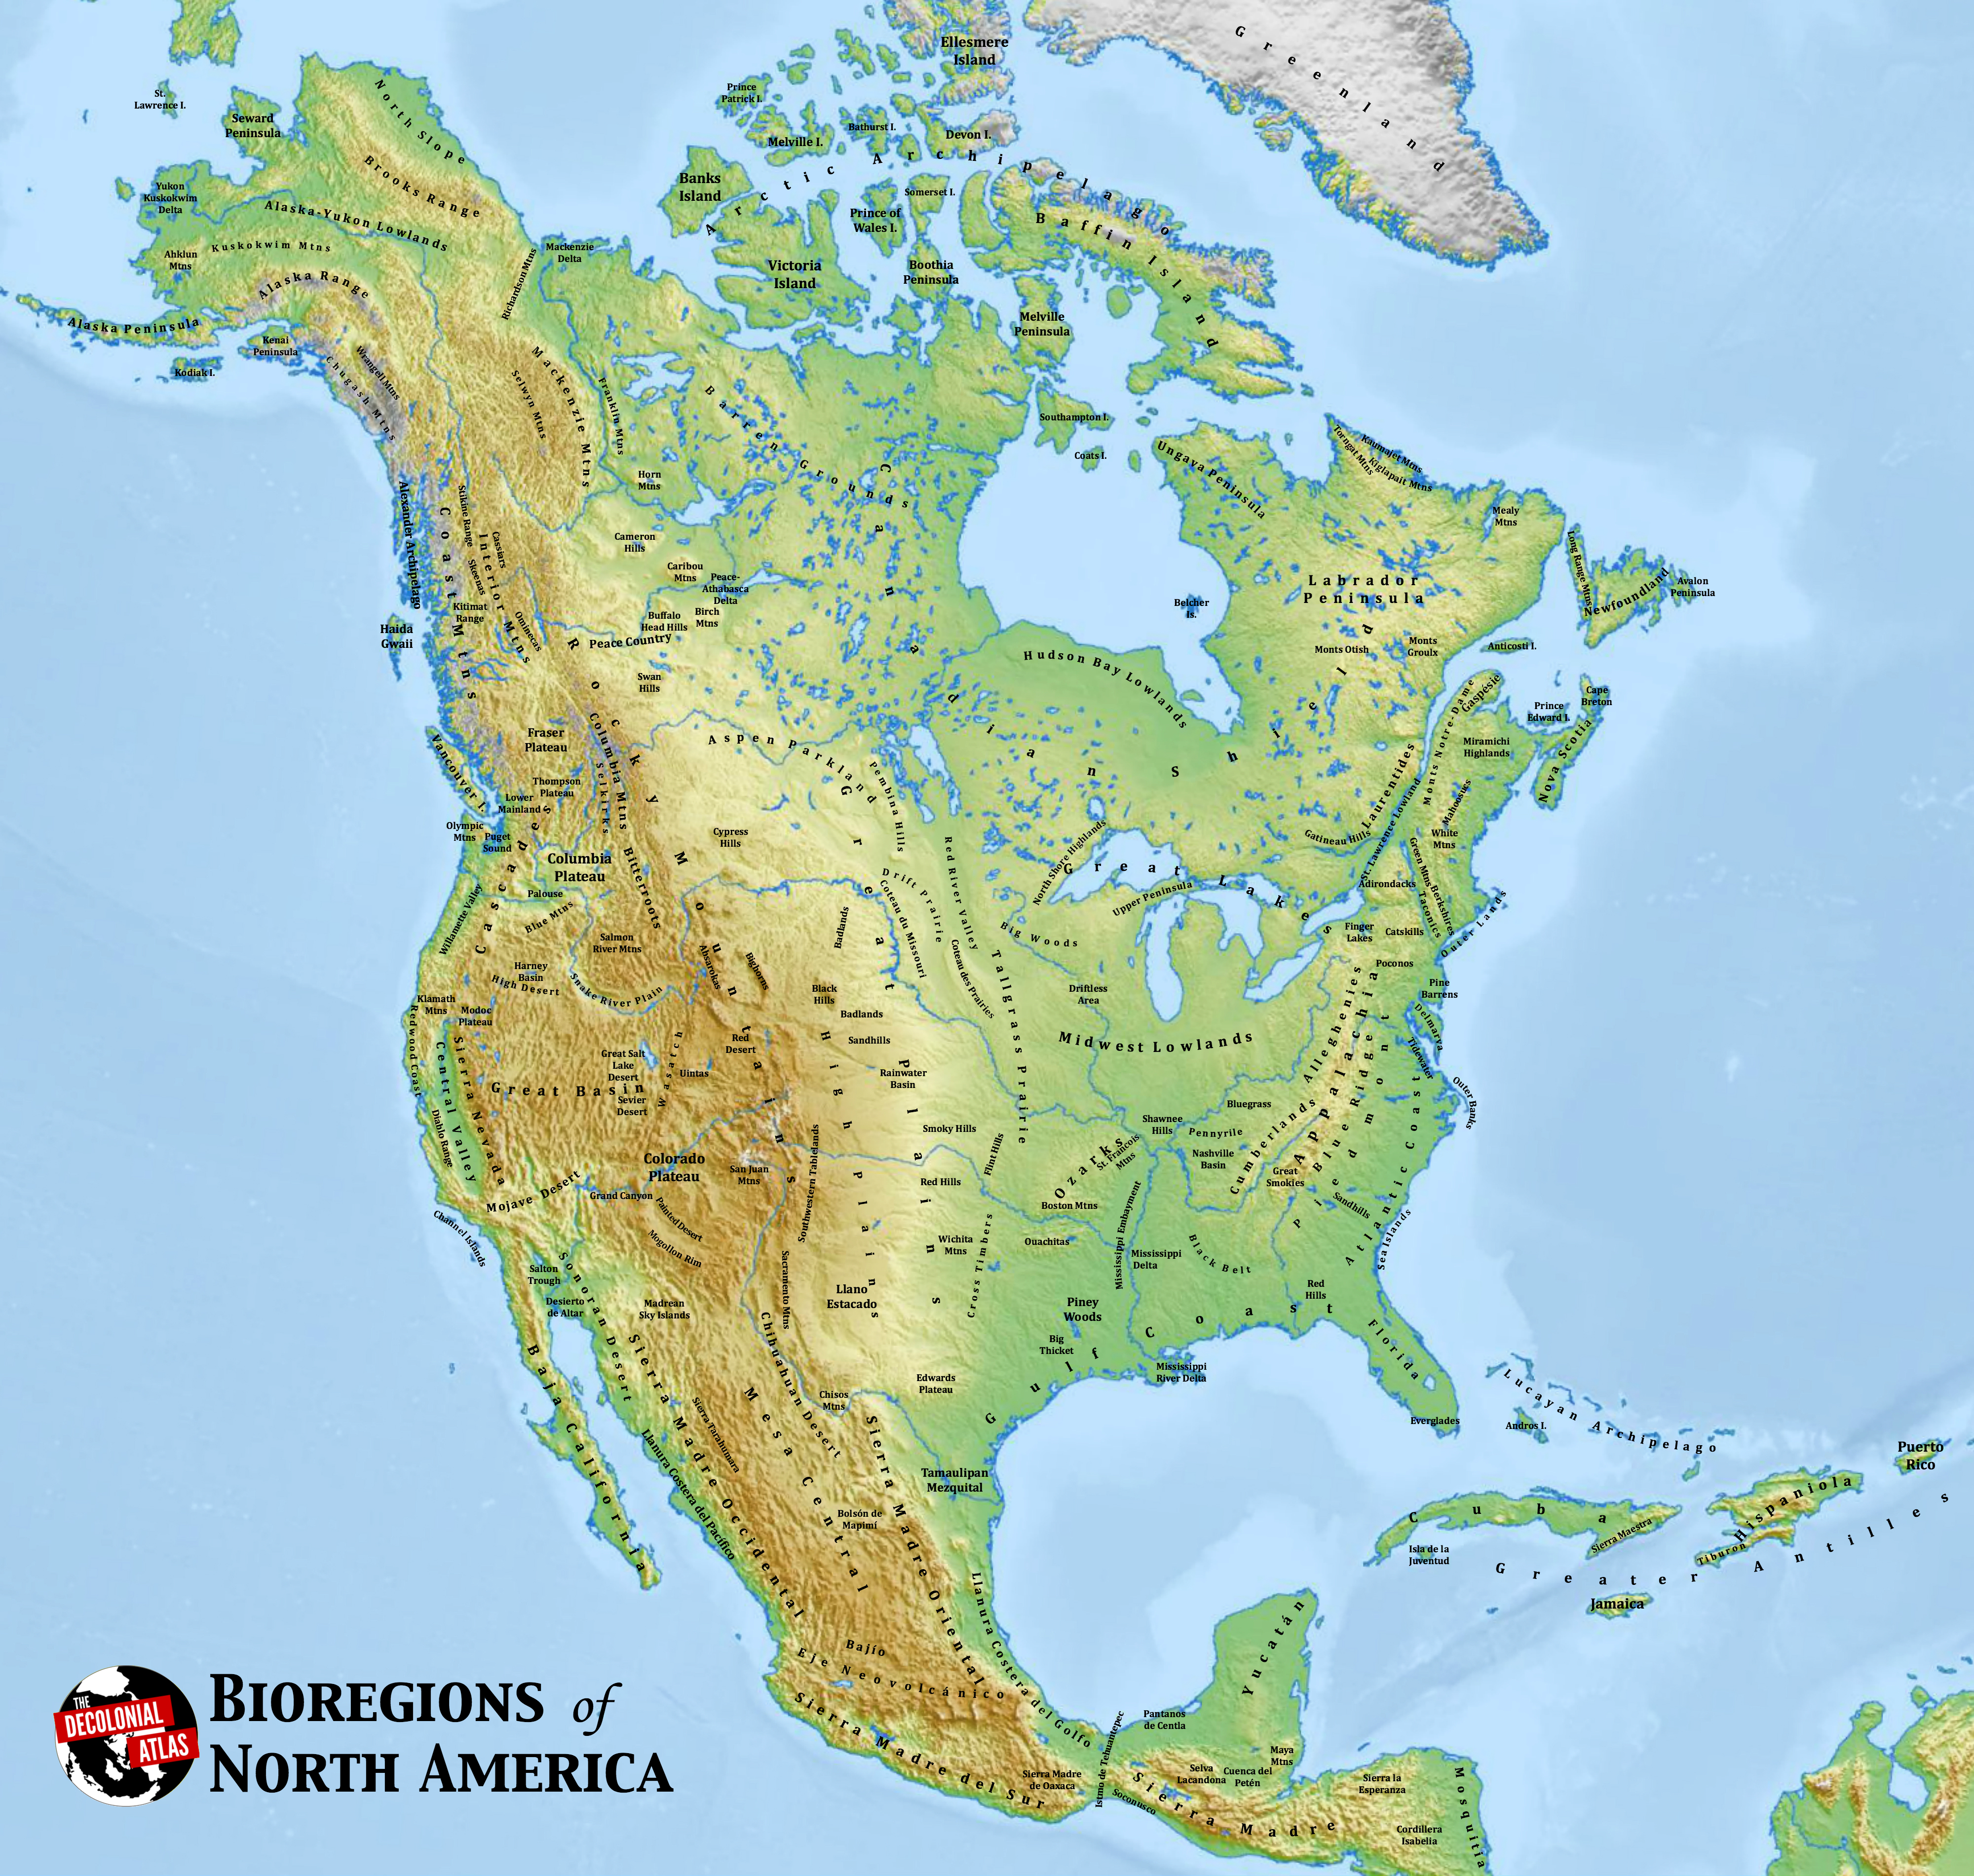 Bioregions of North America – The Decolonial Atlas